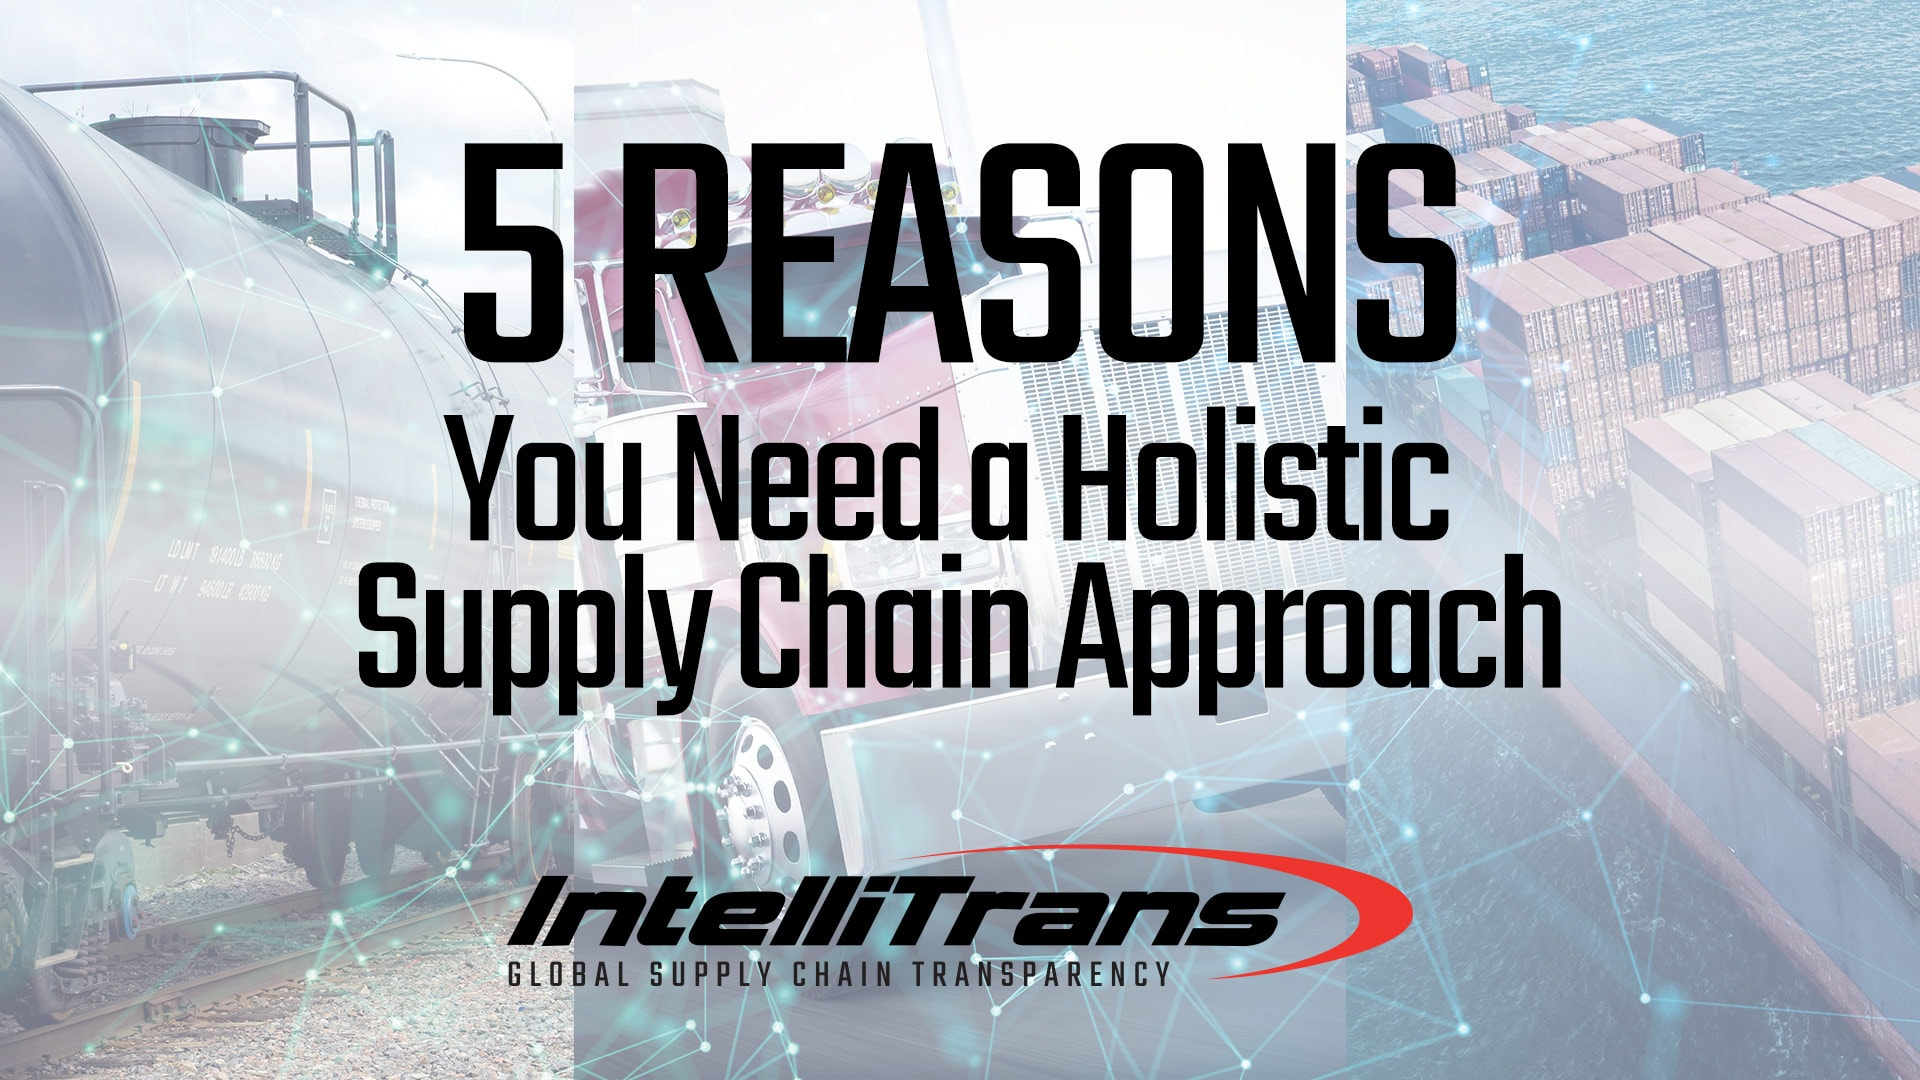 5 Reasons You Need a Holistic Supply Chain Approach